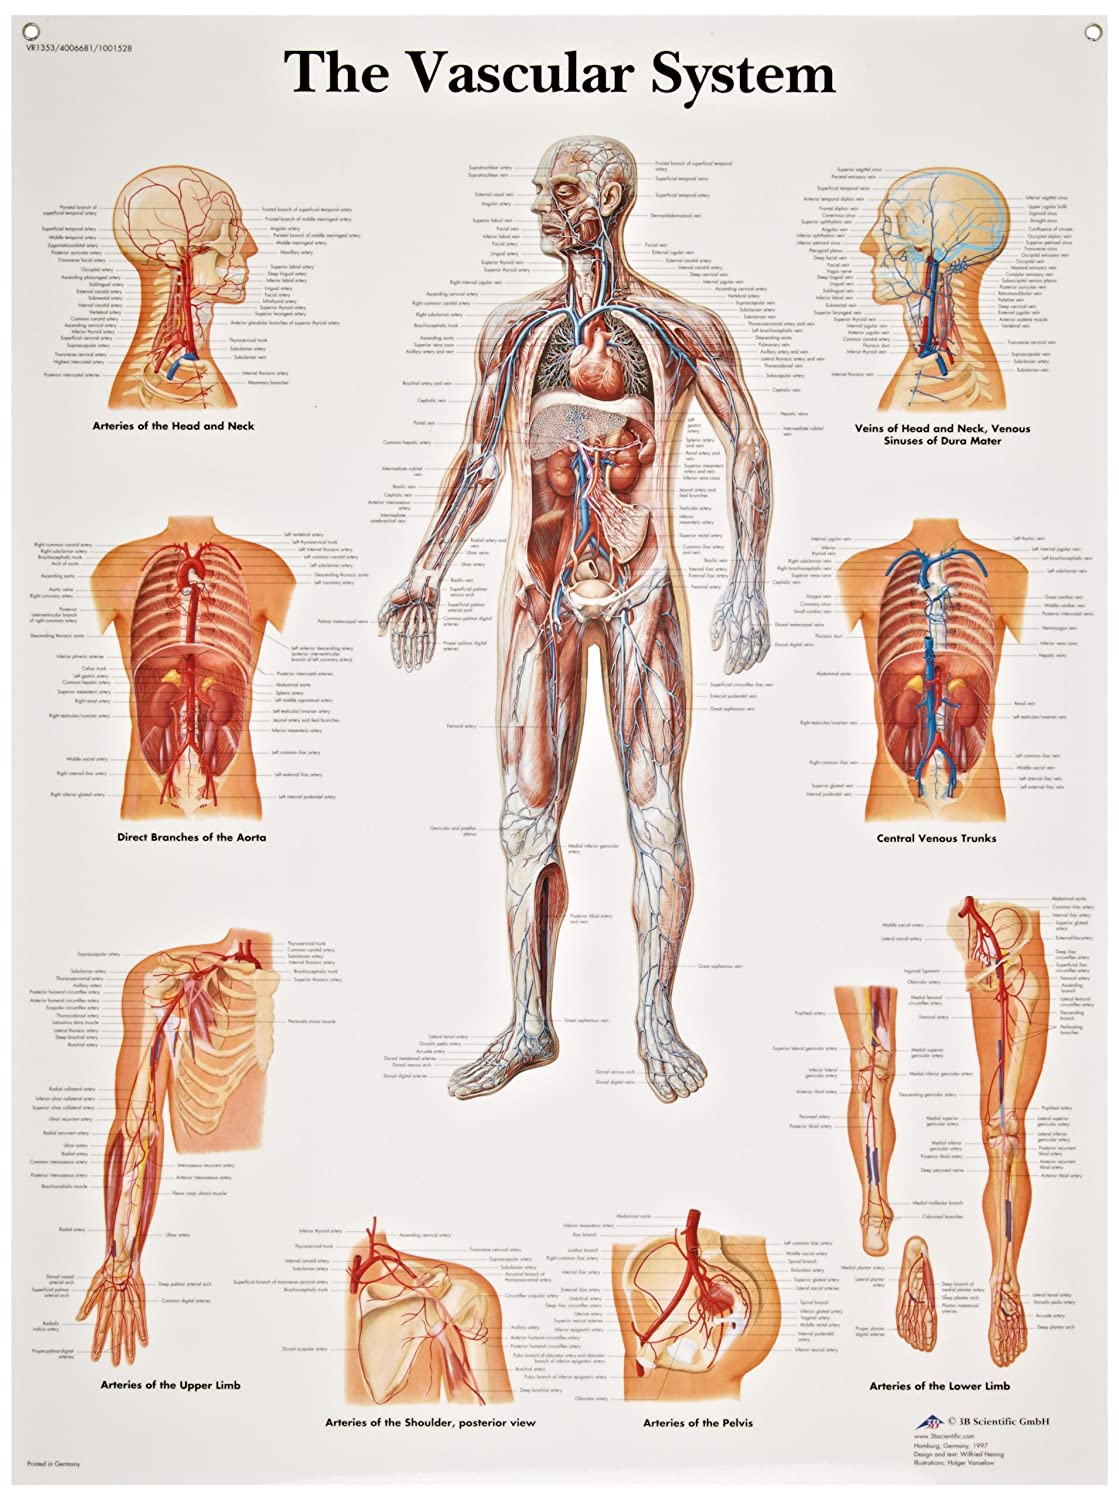 Anatomy Of Vascular System Image collections - human body anatomy